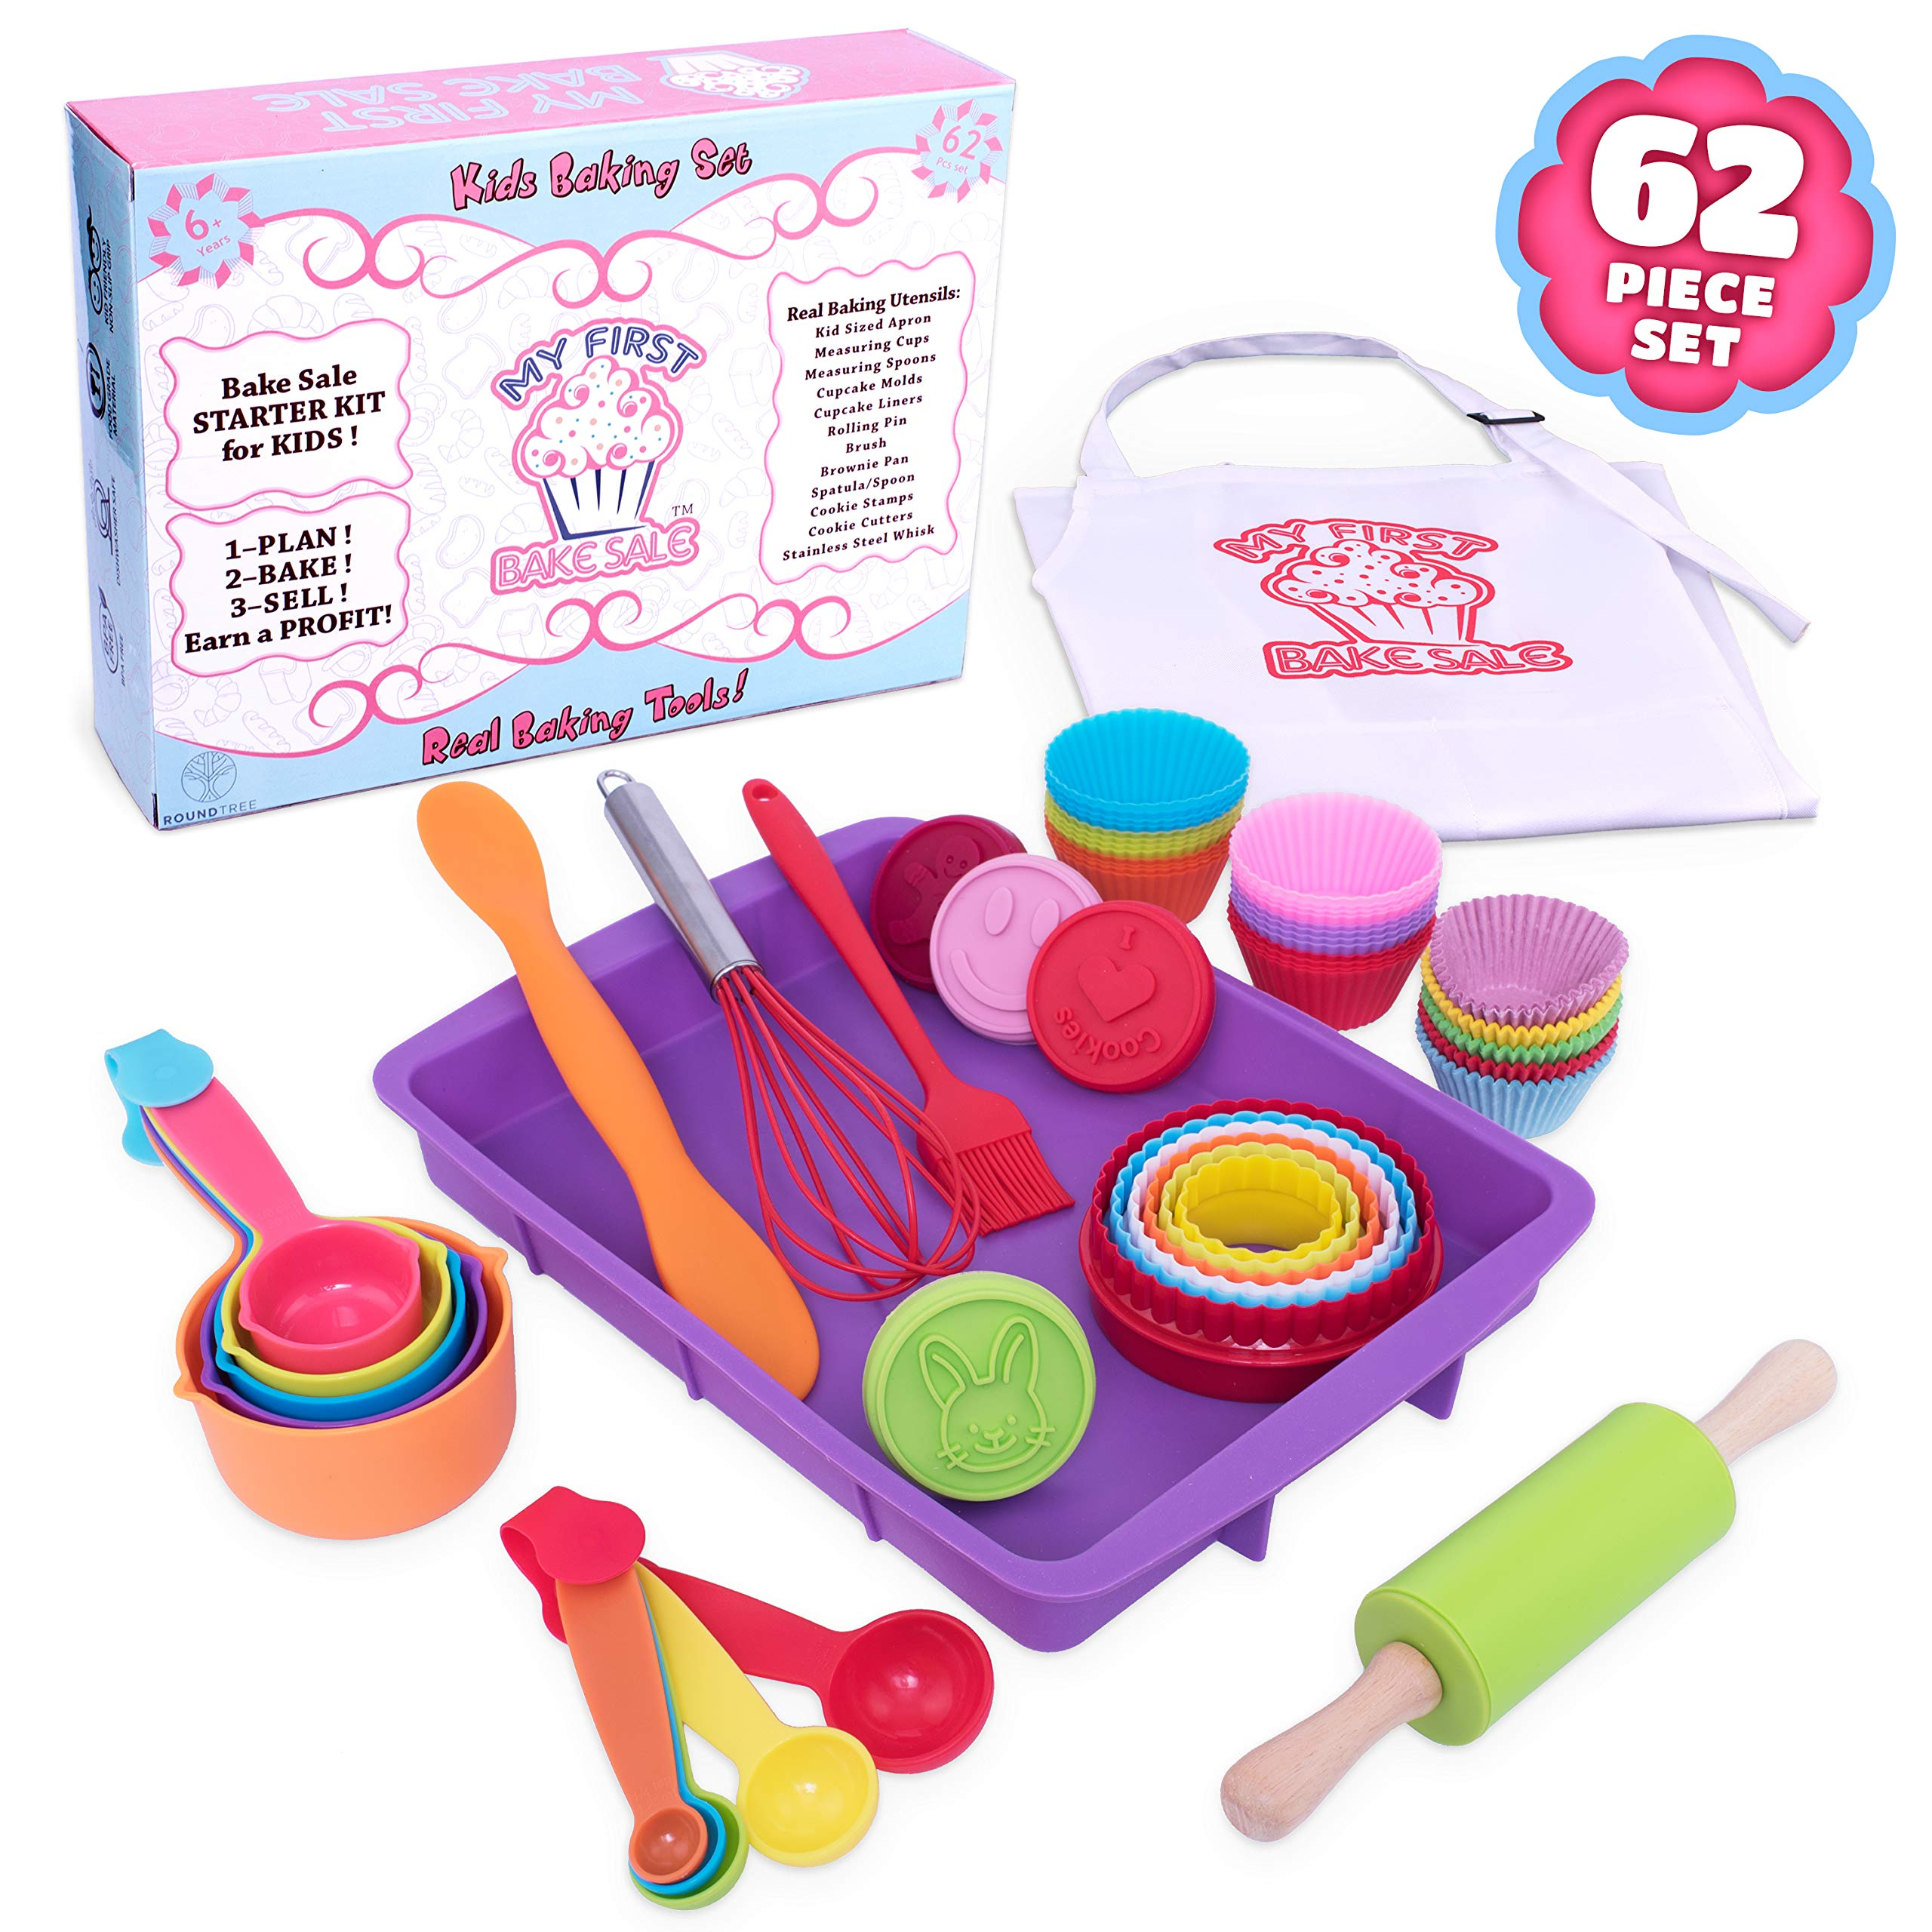 Roundtree My First Bake Sale Kids Baking Set, Kids Cooking Supplies for Making Pastries, Cupcakes, Cakes, Cookies. Ultimate 62 Piece Cooking Set for Kids, Cooking Utensils for Girls and Boys Age 6 Up by Roundtree